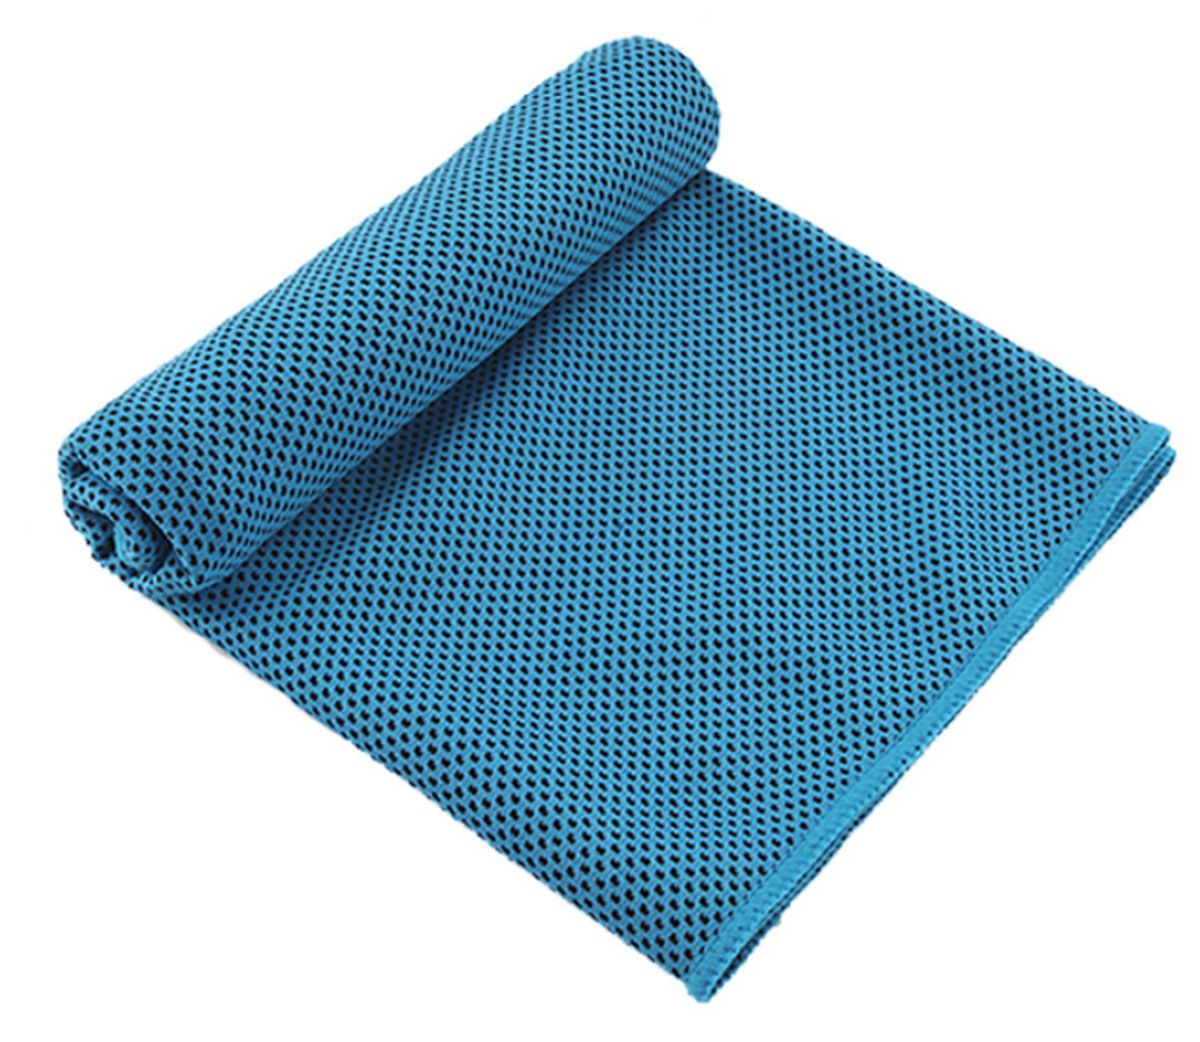 Extra Long Sports Towel With 40 X 12 Inch Works Great As Cooling